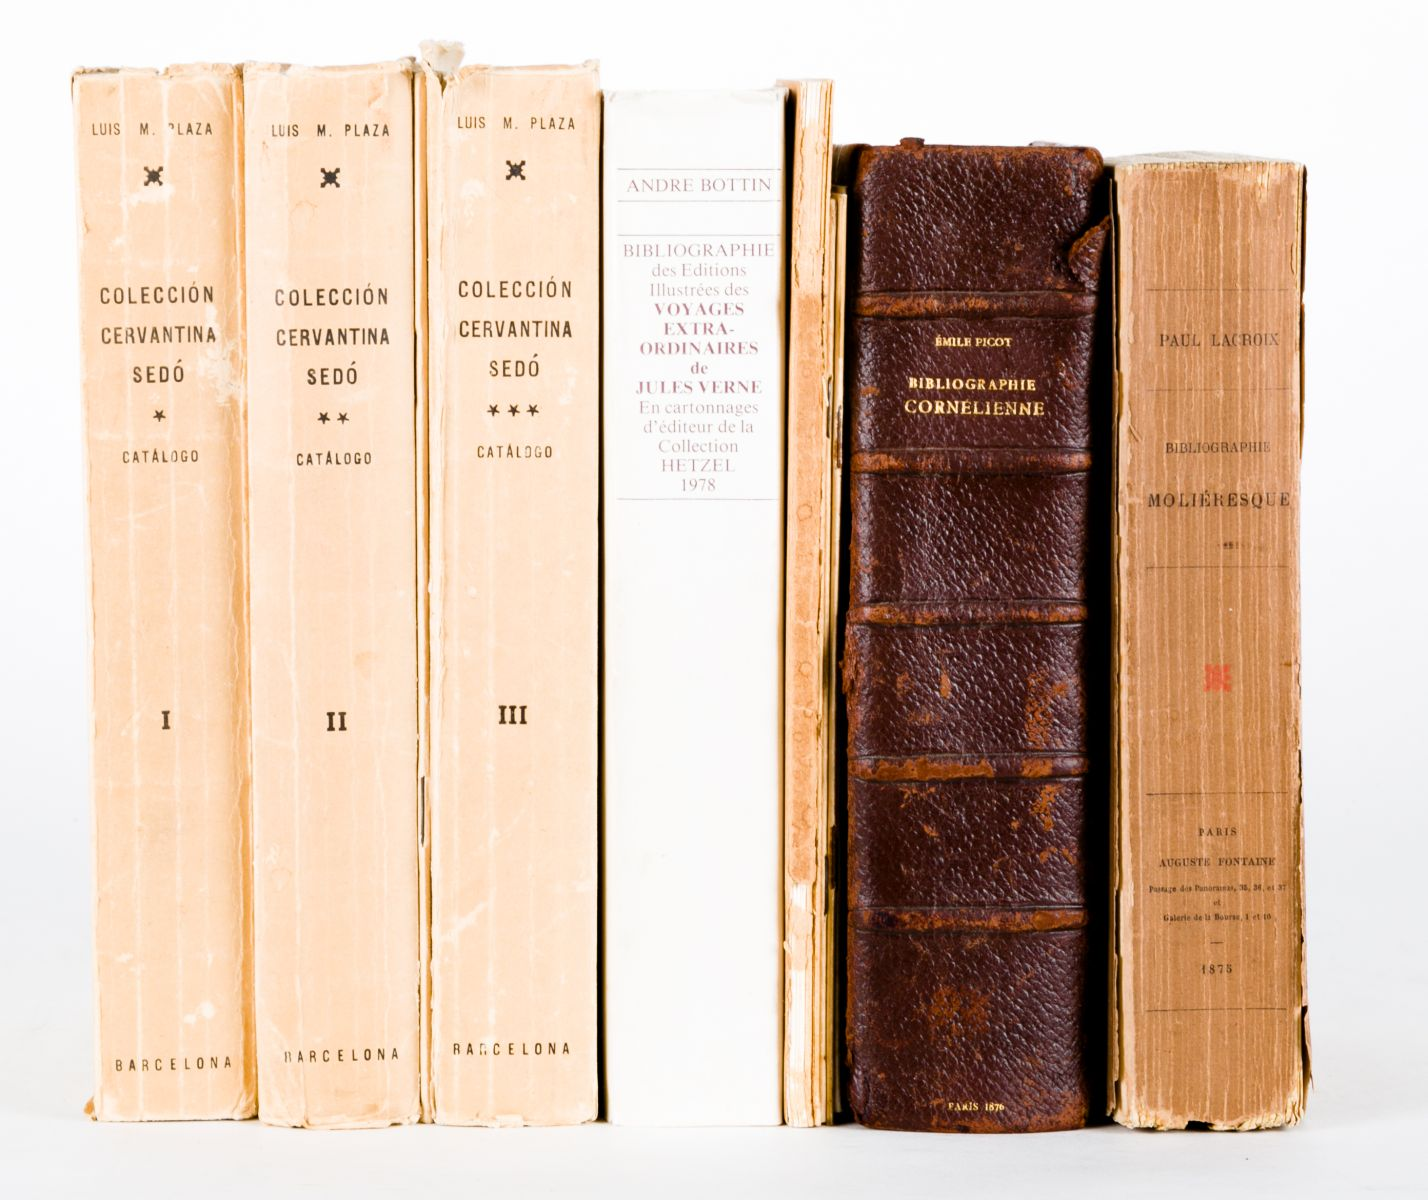 Online Sale: A Bibliophile's Bibliographic Library - Part II